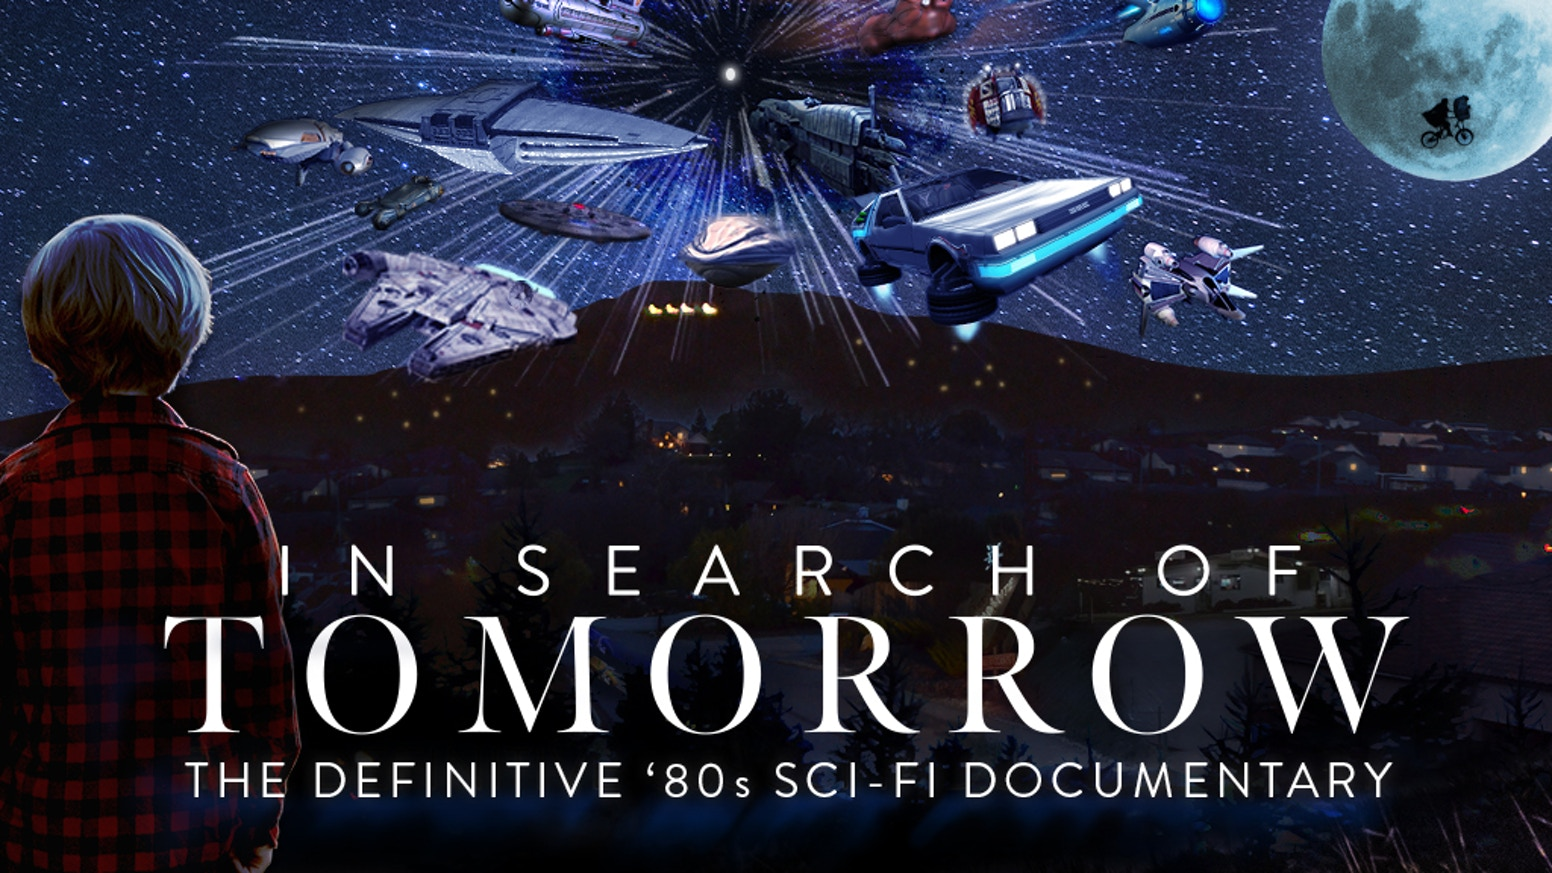 A four-hour-plus retrospective of '80s Sci-Fi movies featuring interviews with actors, directors, writers, SFX experts, and composers. Missed out? You can still join the campaign on CrowdOx using this link: